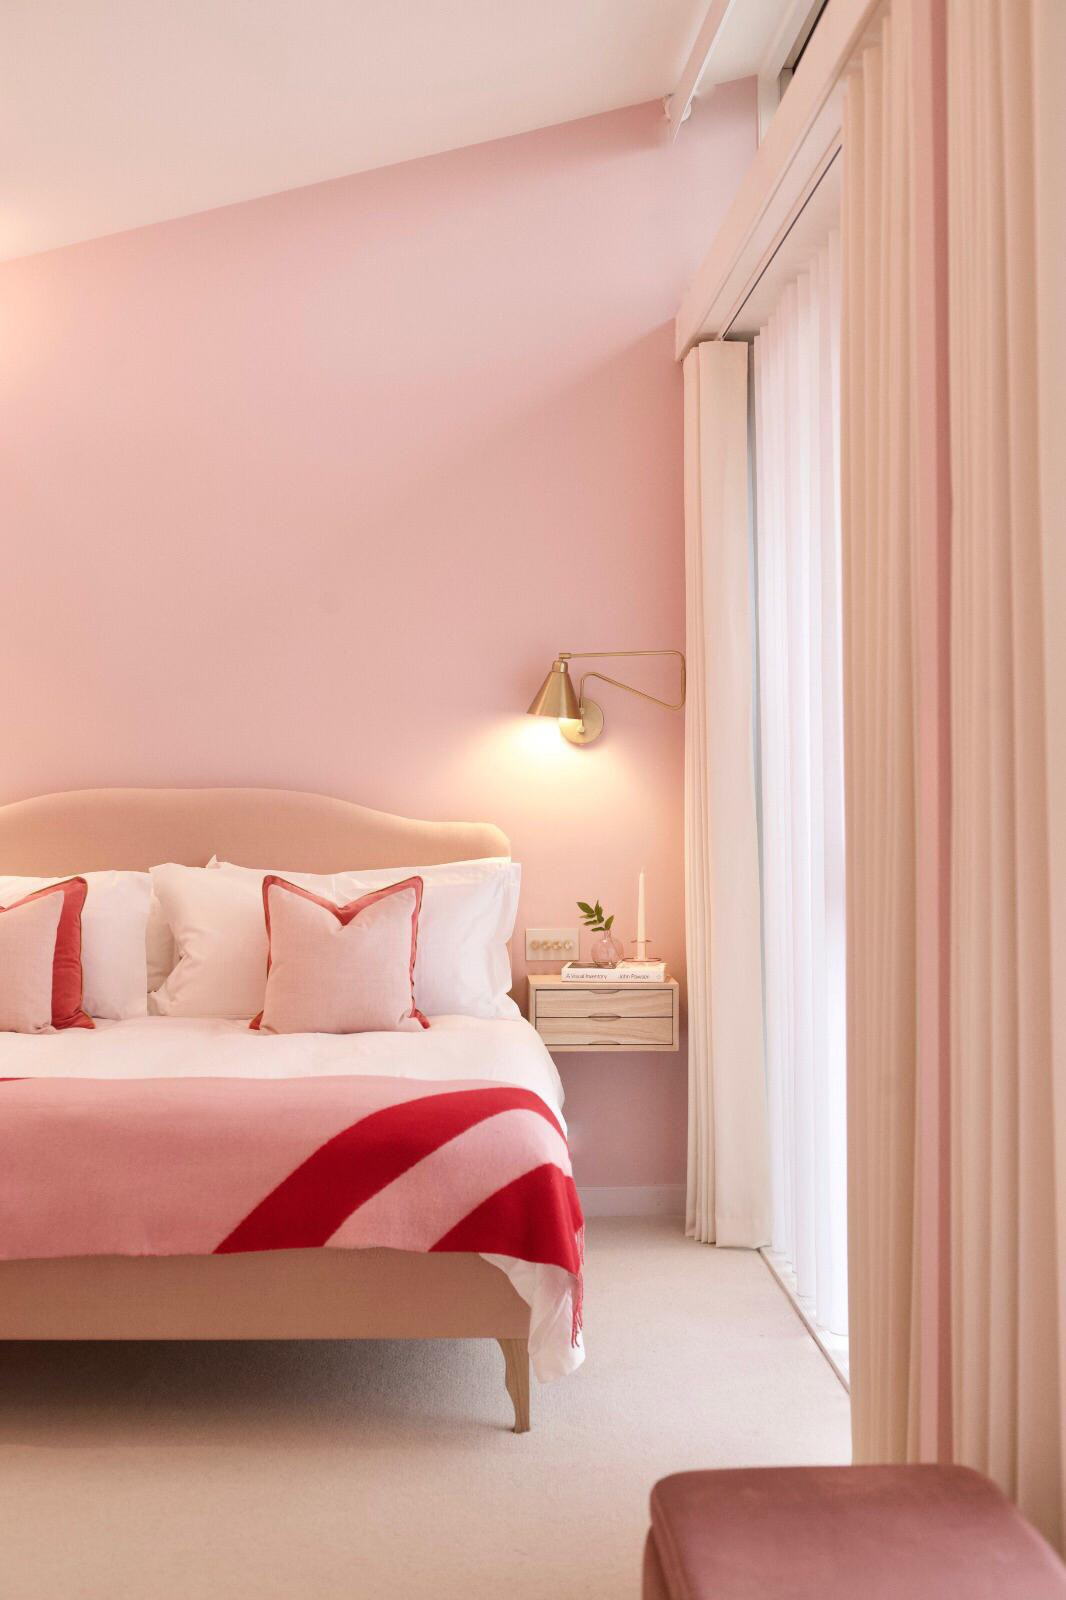 Best Bedroom Colors And Wall Paint Ideas 2021 Parfaire